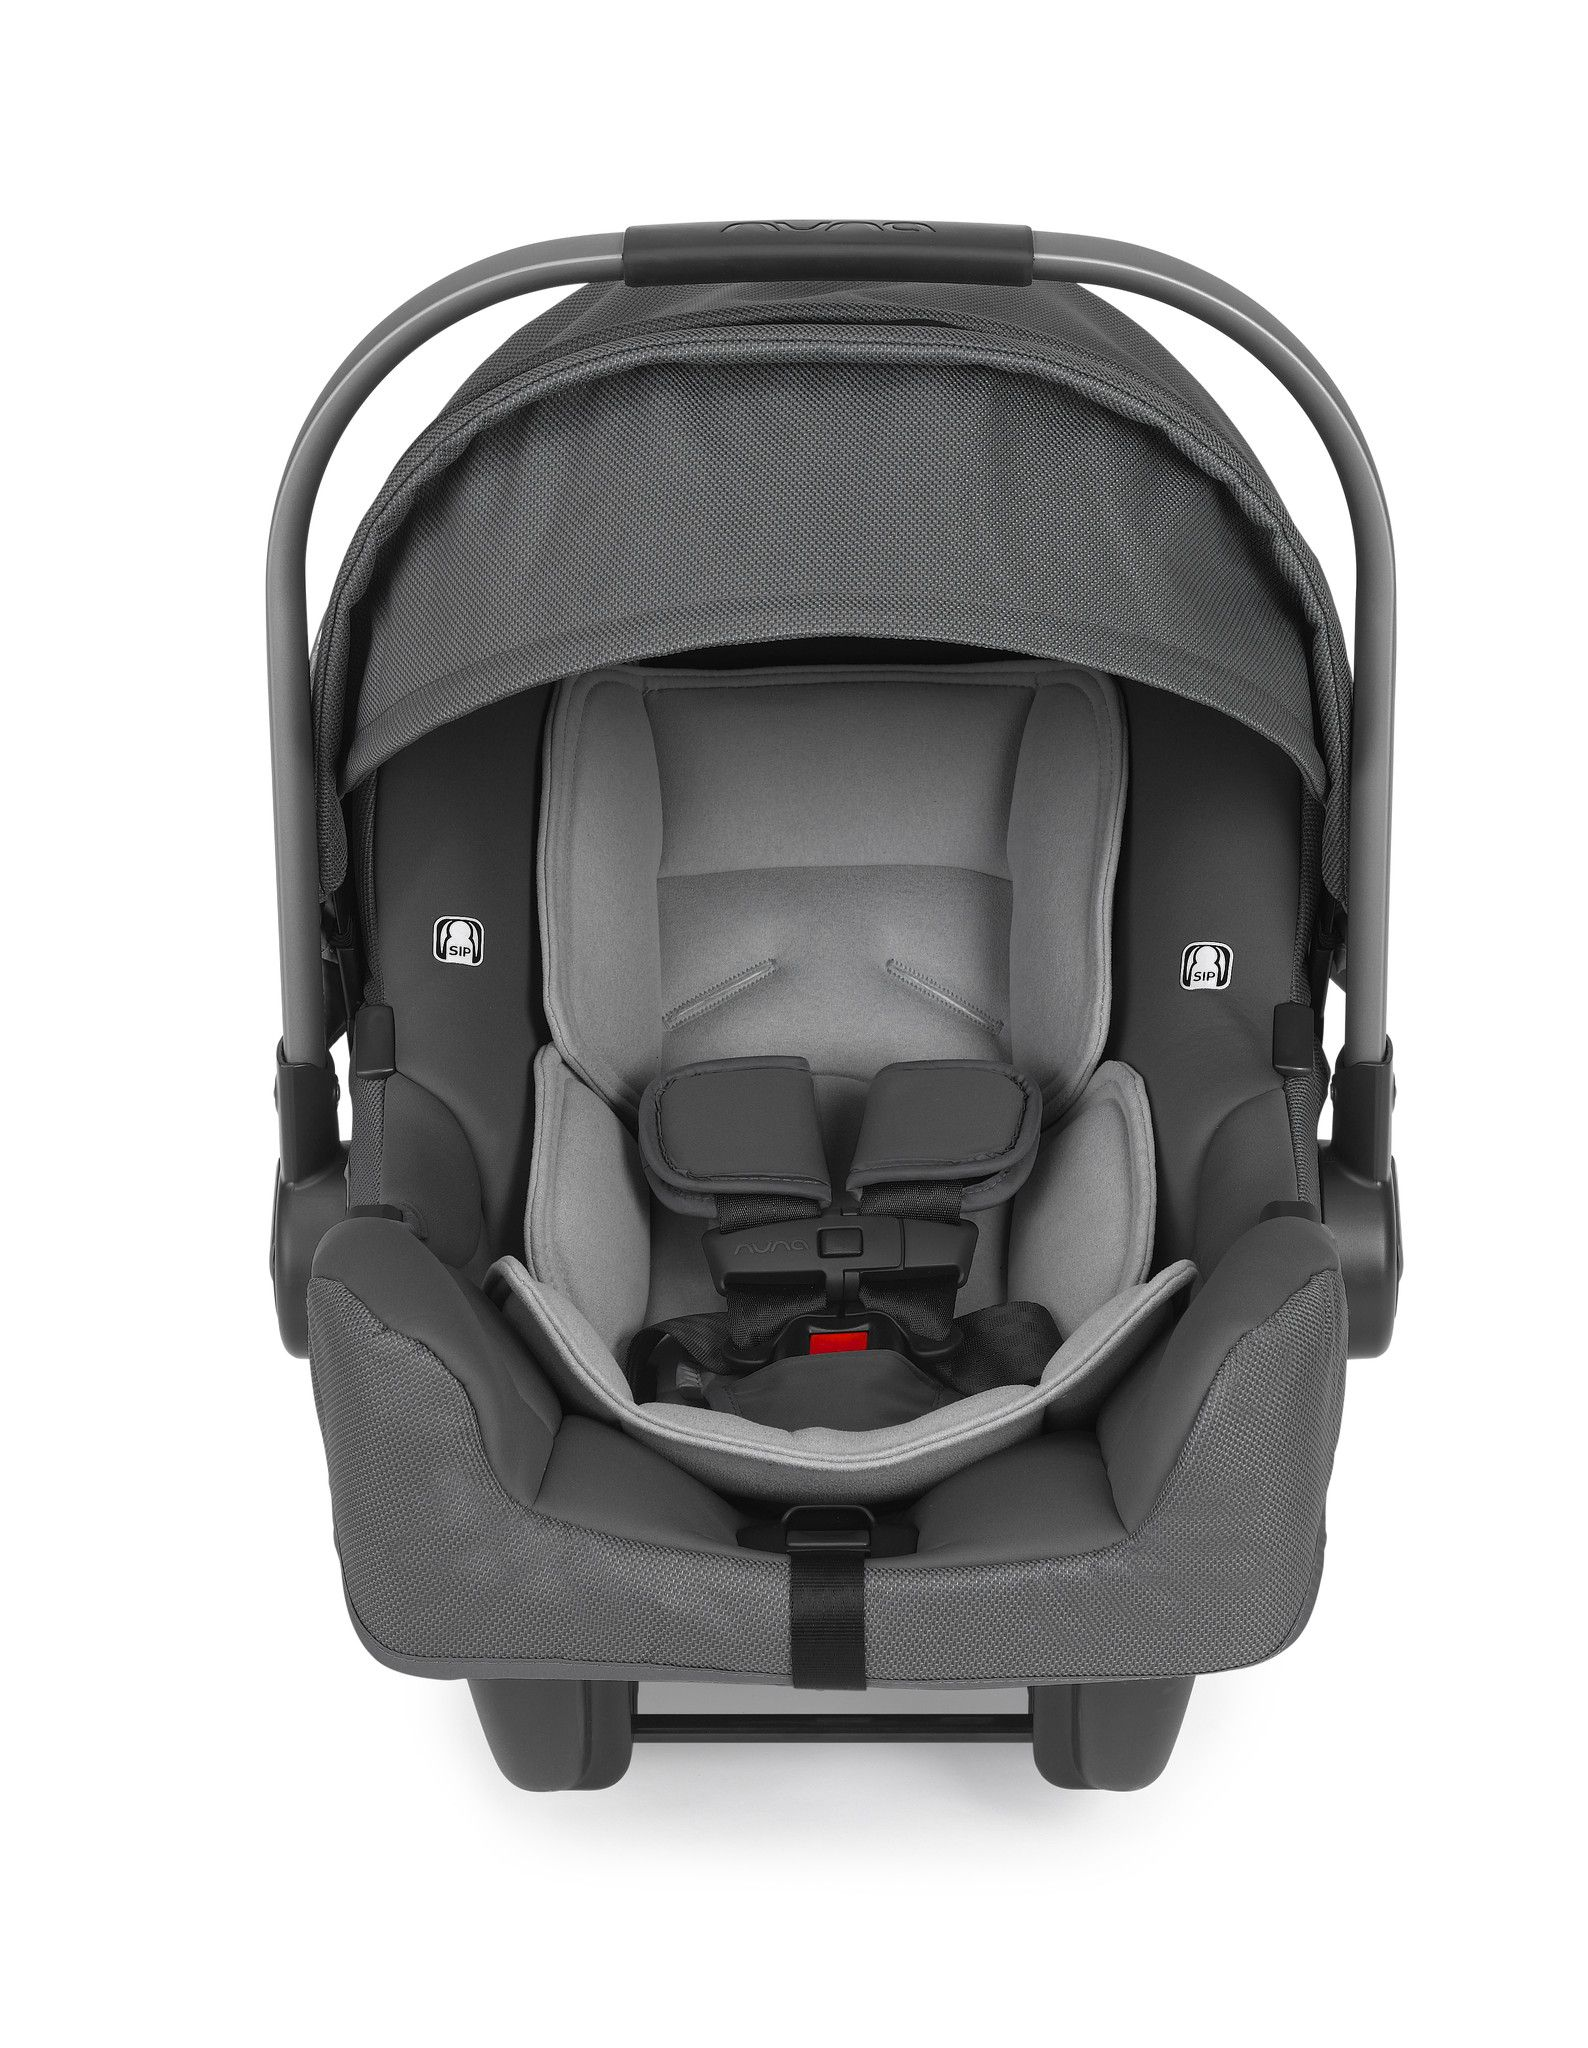 Quick Glance Features Safety And Style Collide In One Memorable Car Seat The Nuna Pipa Infant